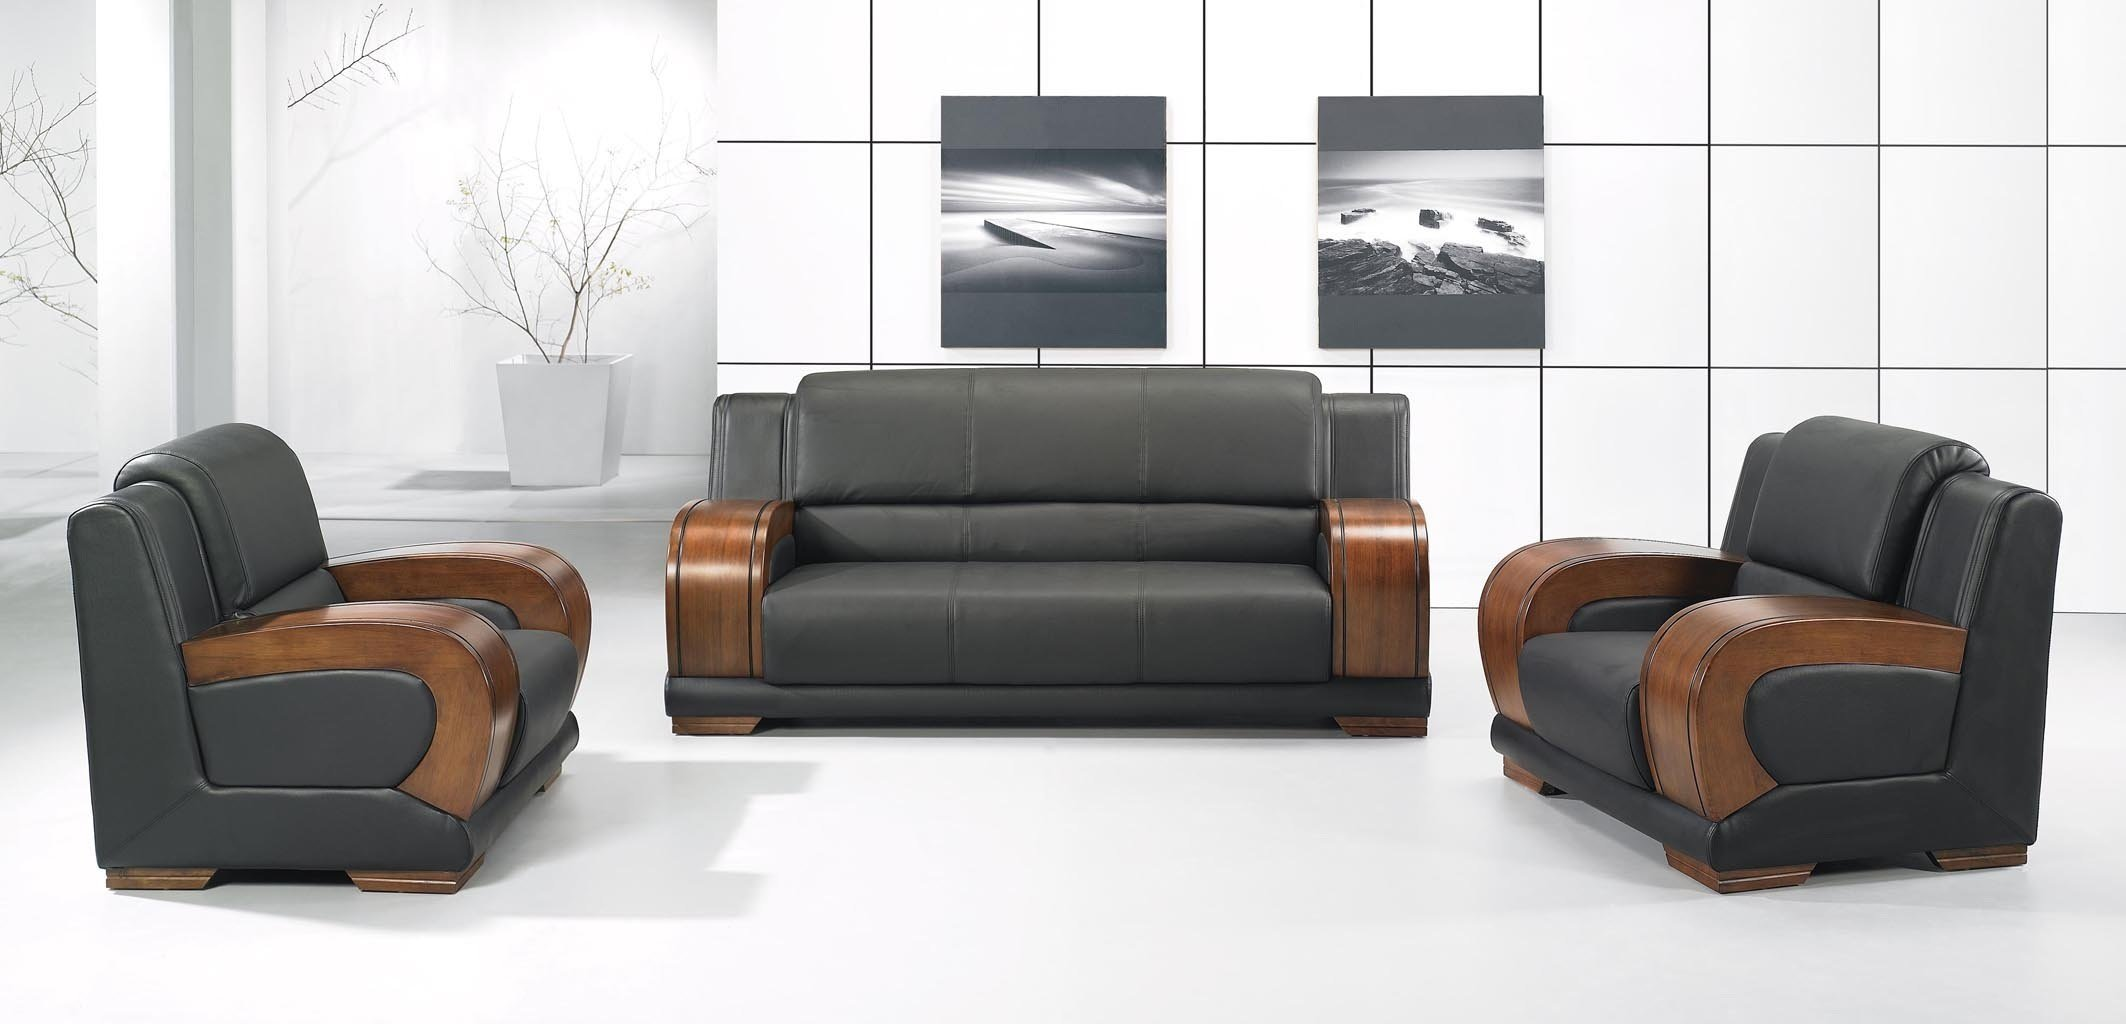 leather furniture cleaning photo